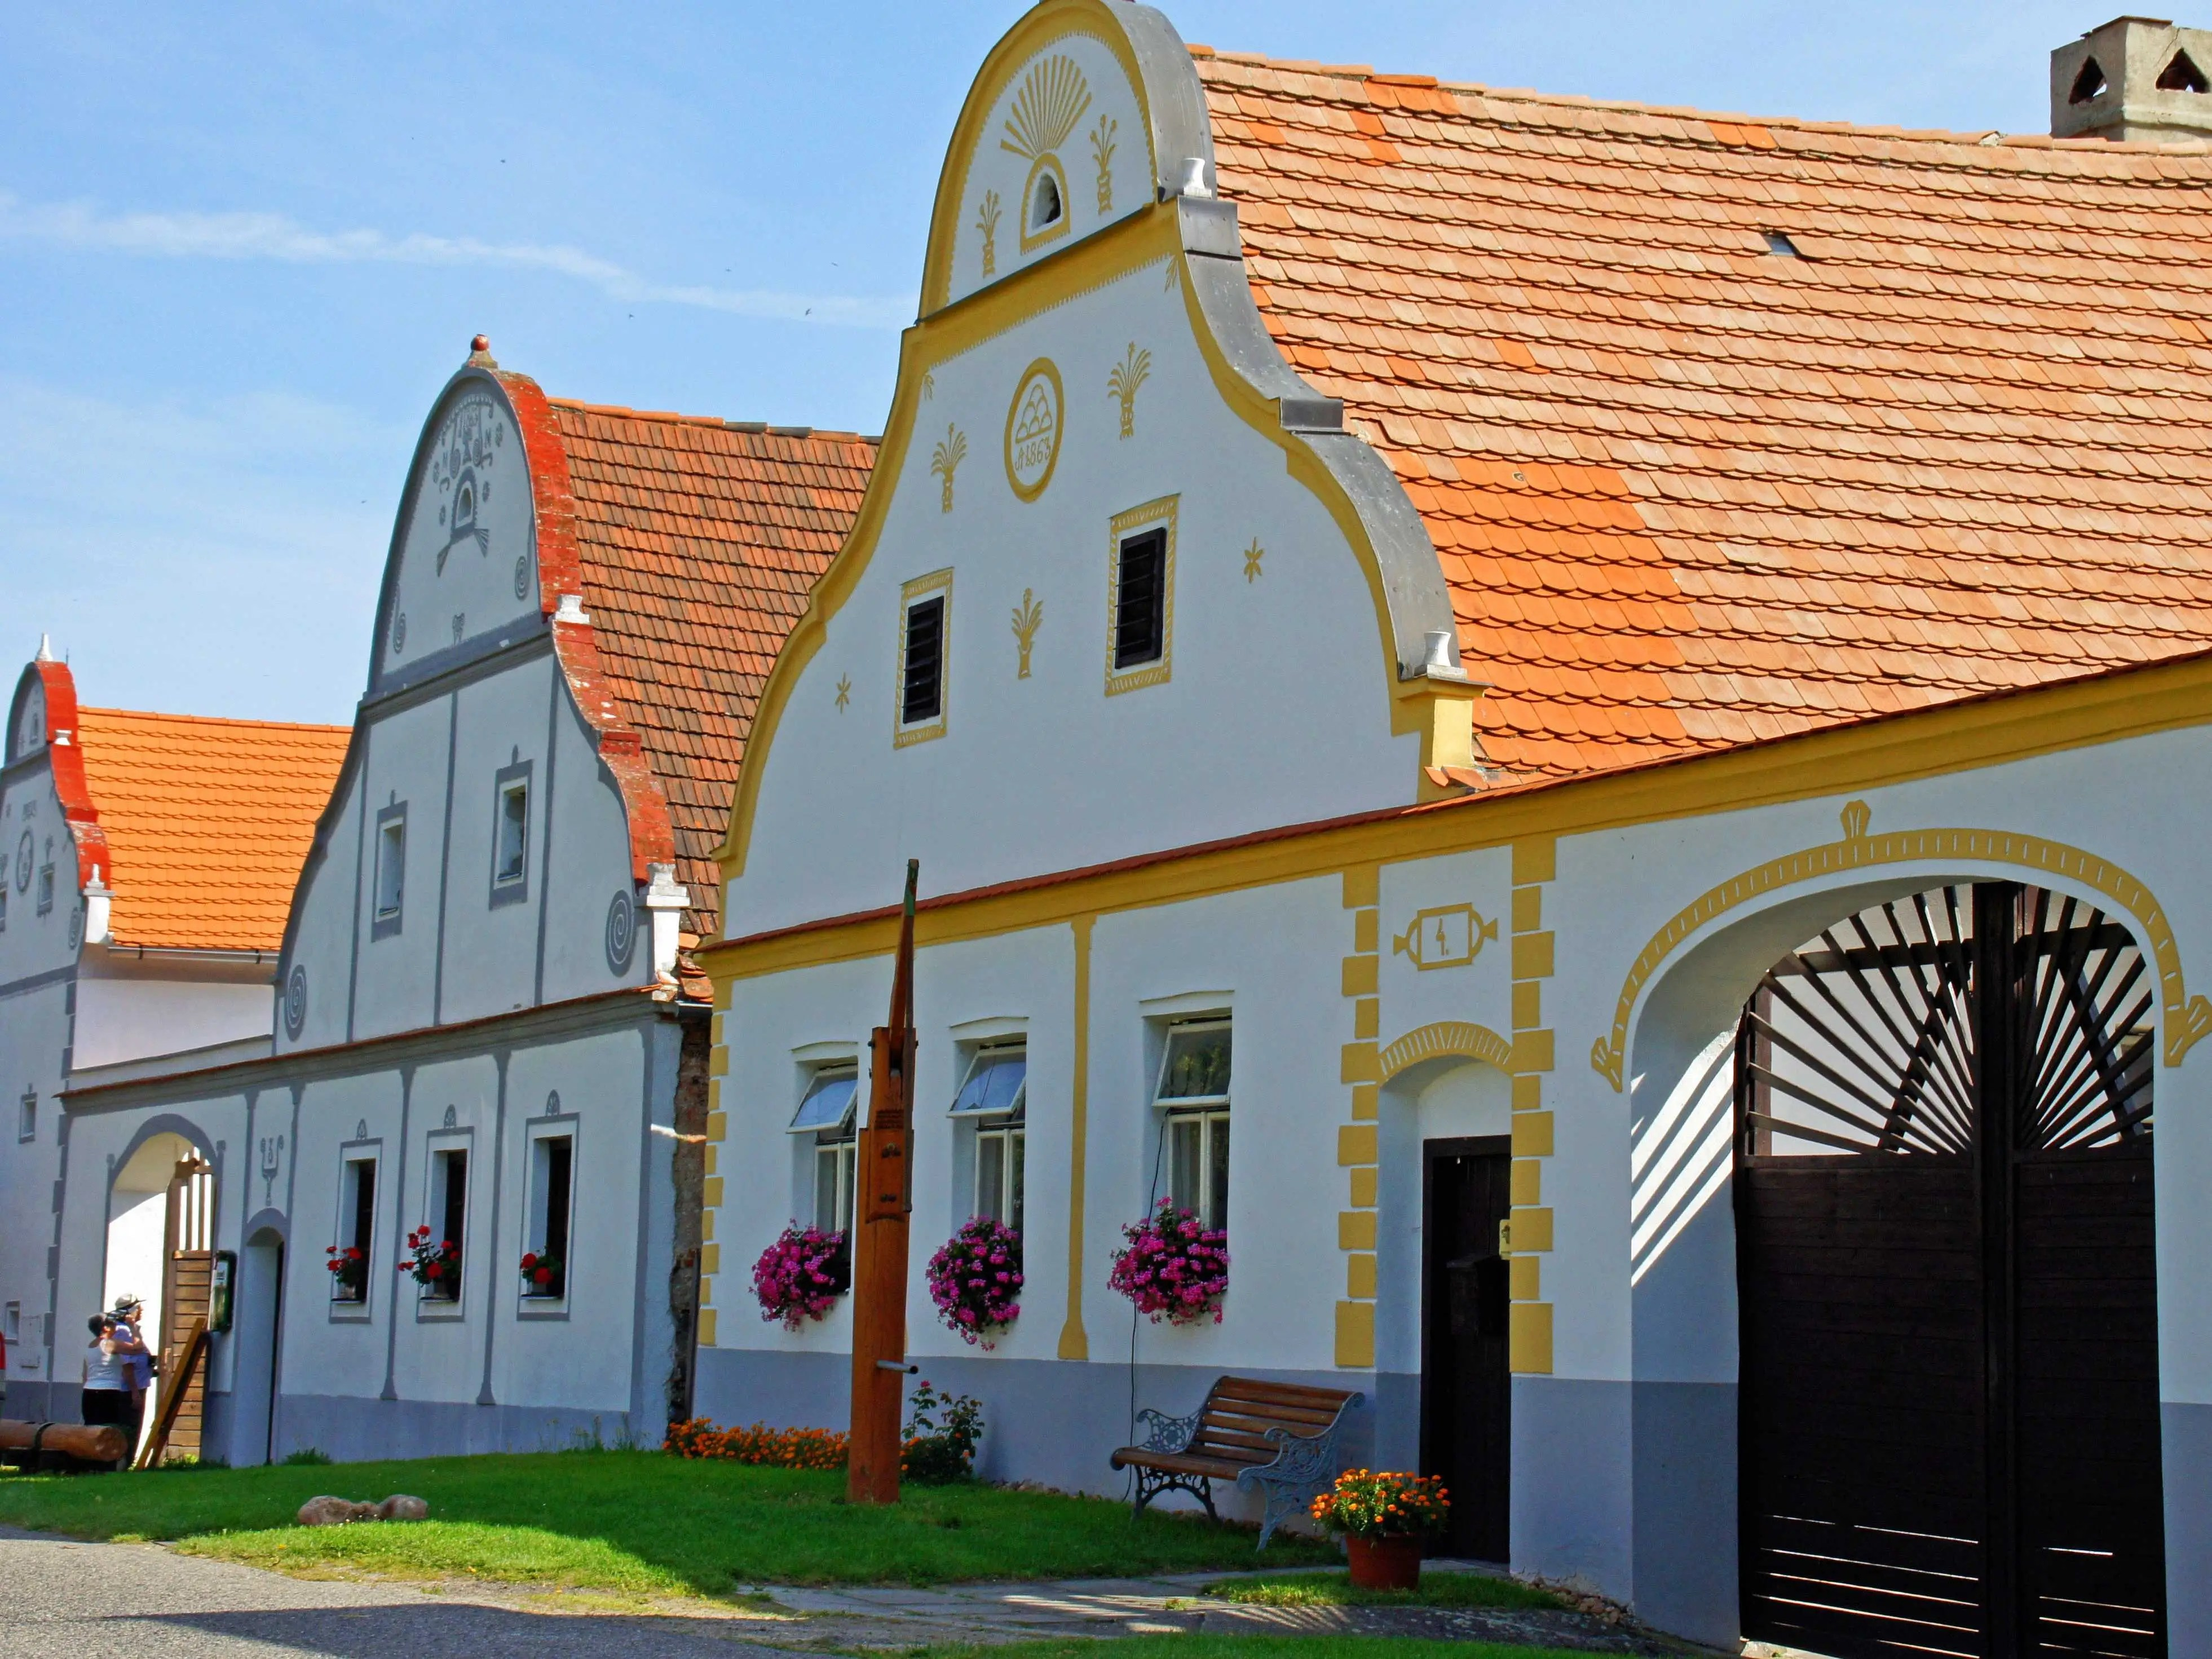 Holašovice, situated in the South Bohemian Region of the Czech Republic, maintains its 18th- and 19th-century buildings and its ground plan, which now includes 120 buildings arranged around an elongated village square. It also includes 23 of its original farmsteads, which are protected today as architectural monuments.